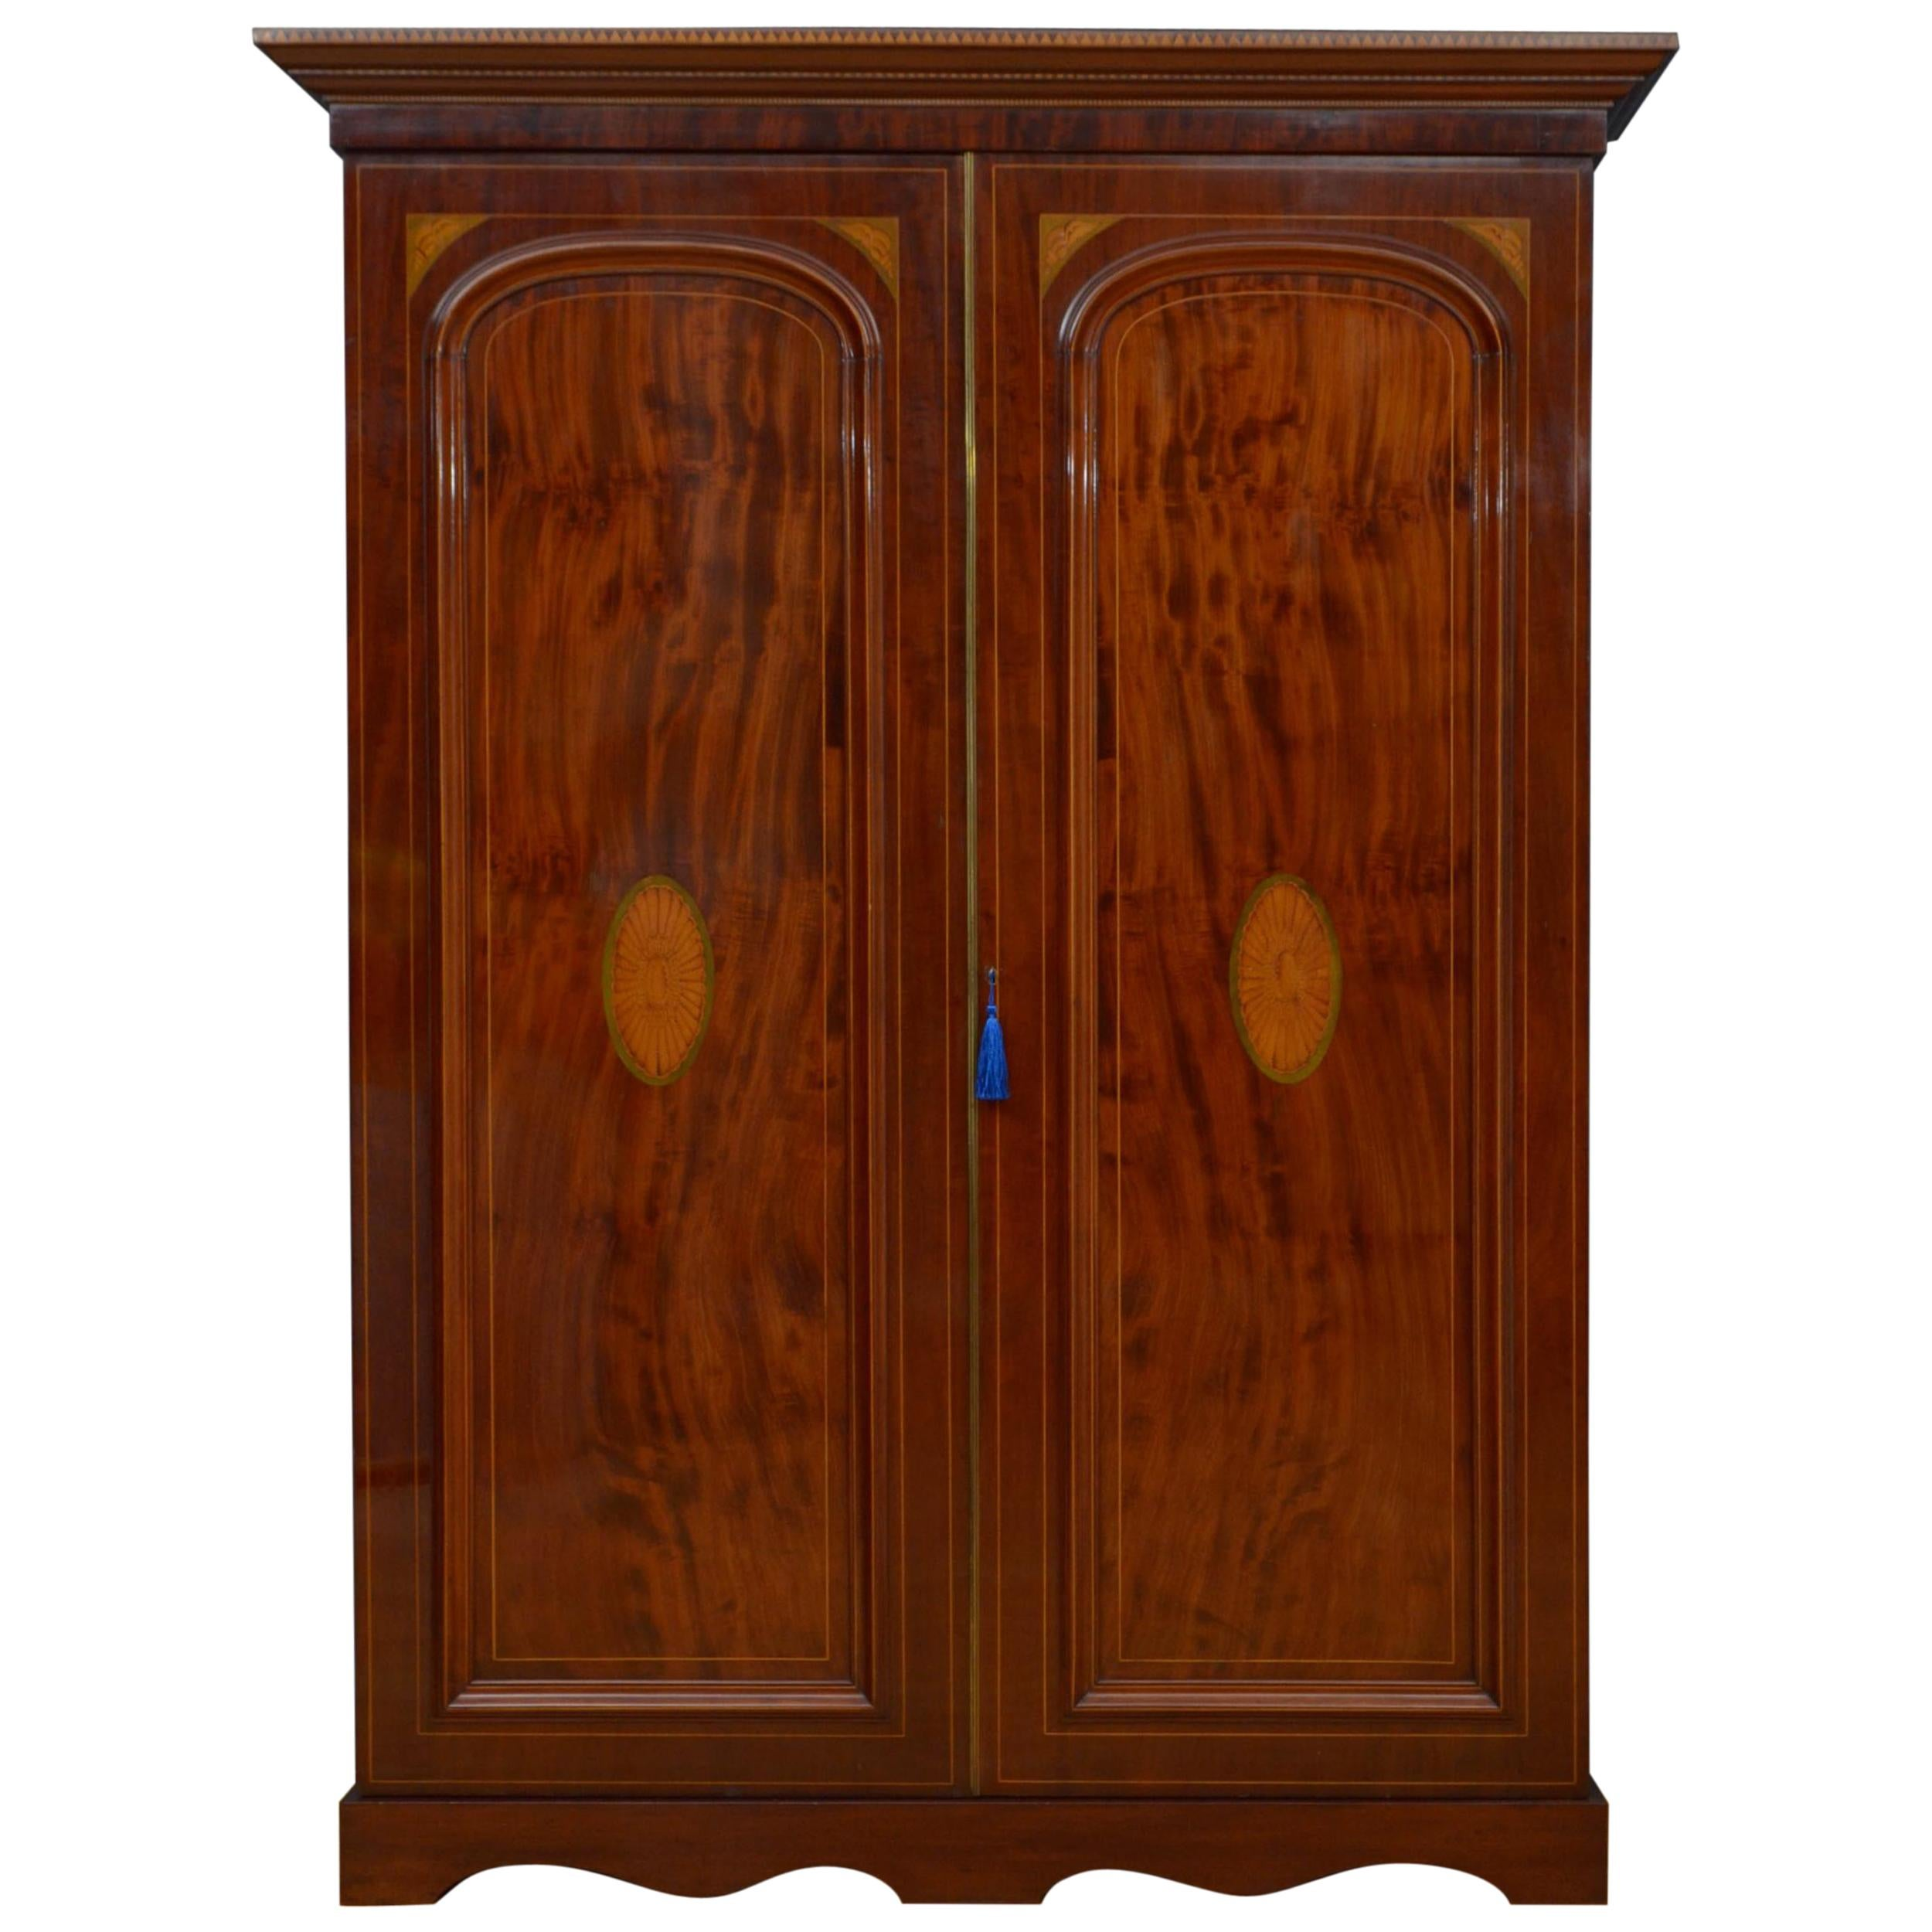 Victorian Mahogany Two Door Wardrobe